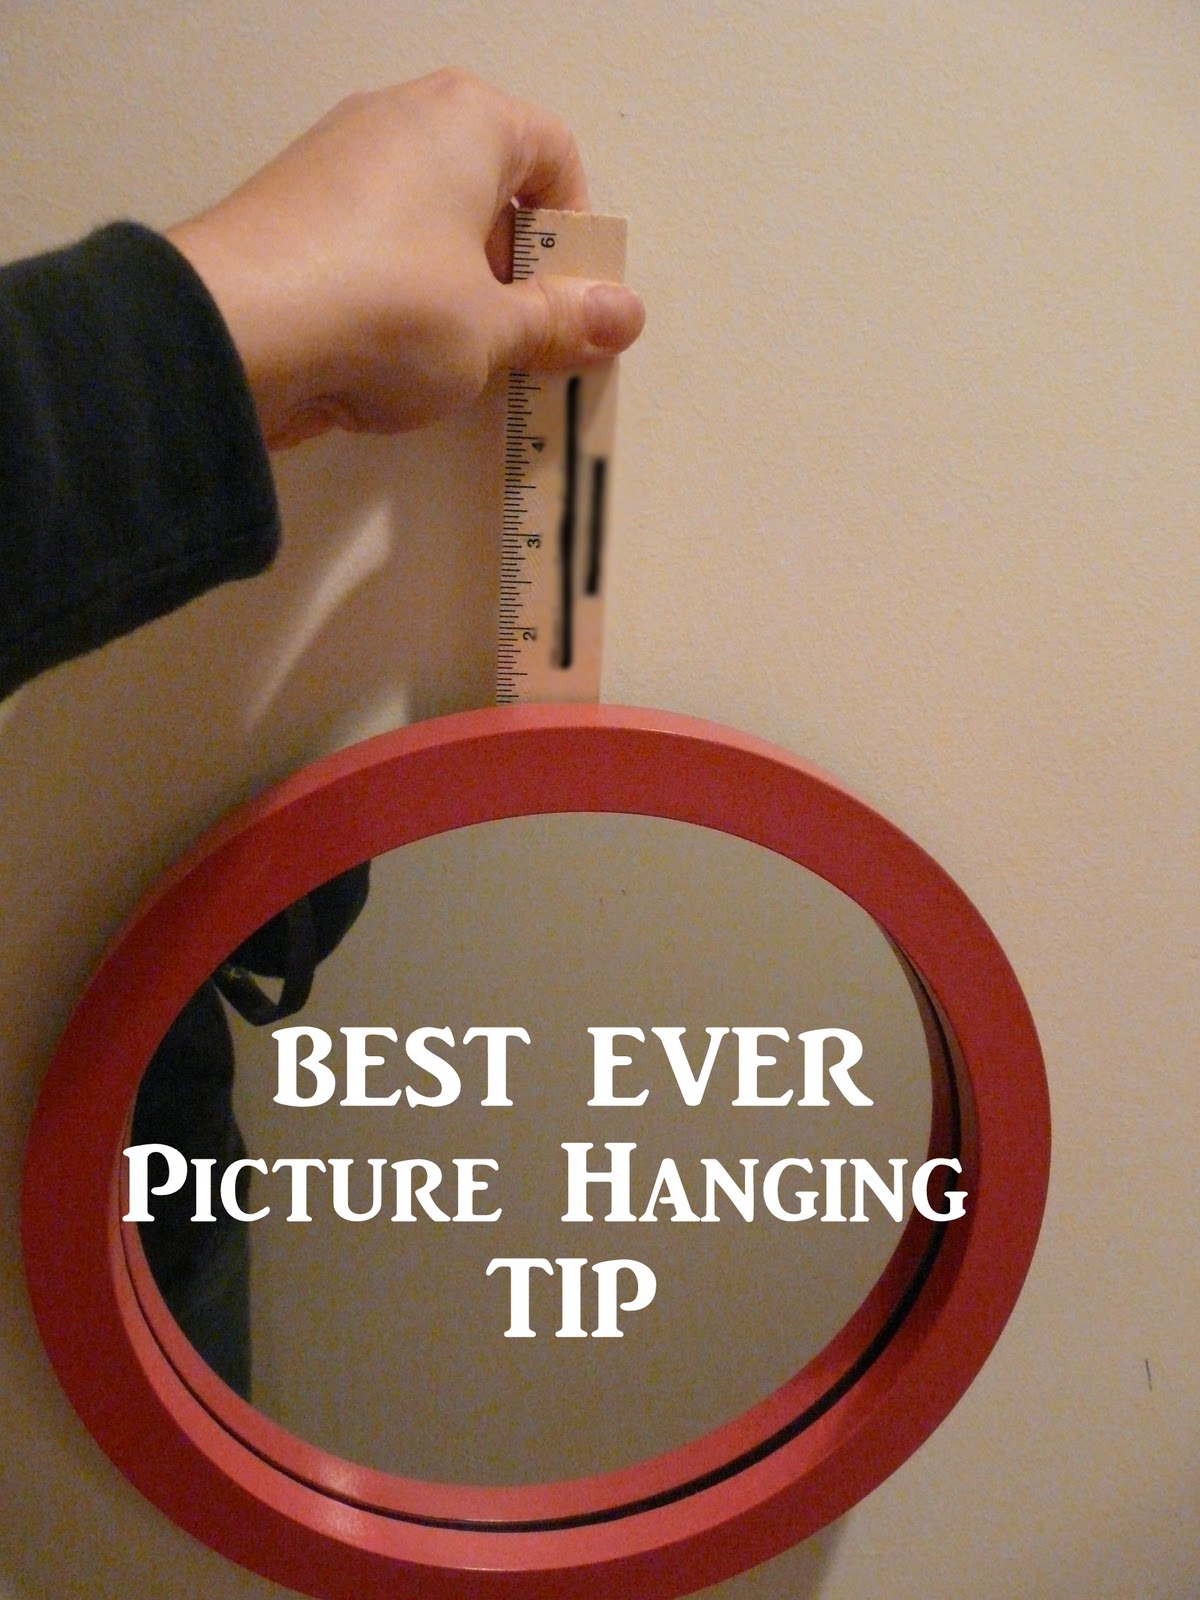 Where to hang pictures How To Hang A Picture - Wall Art Tips, Video